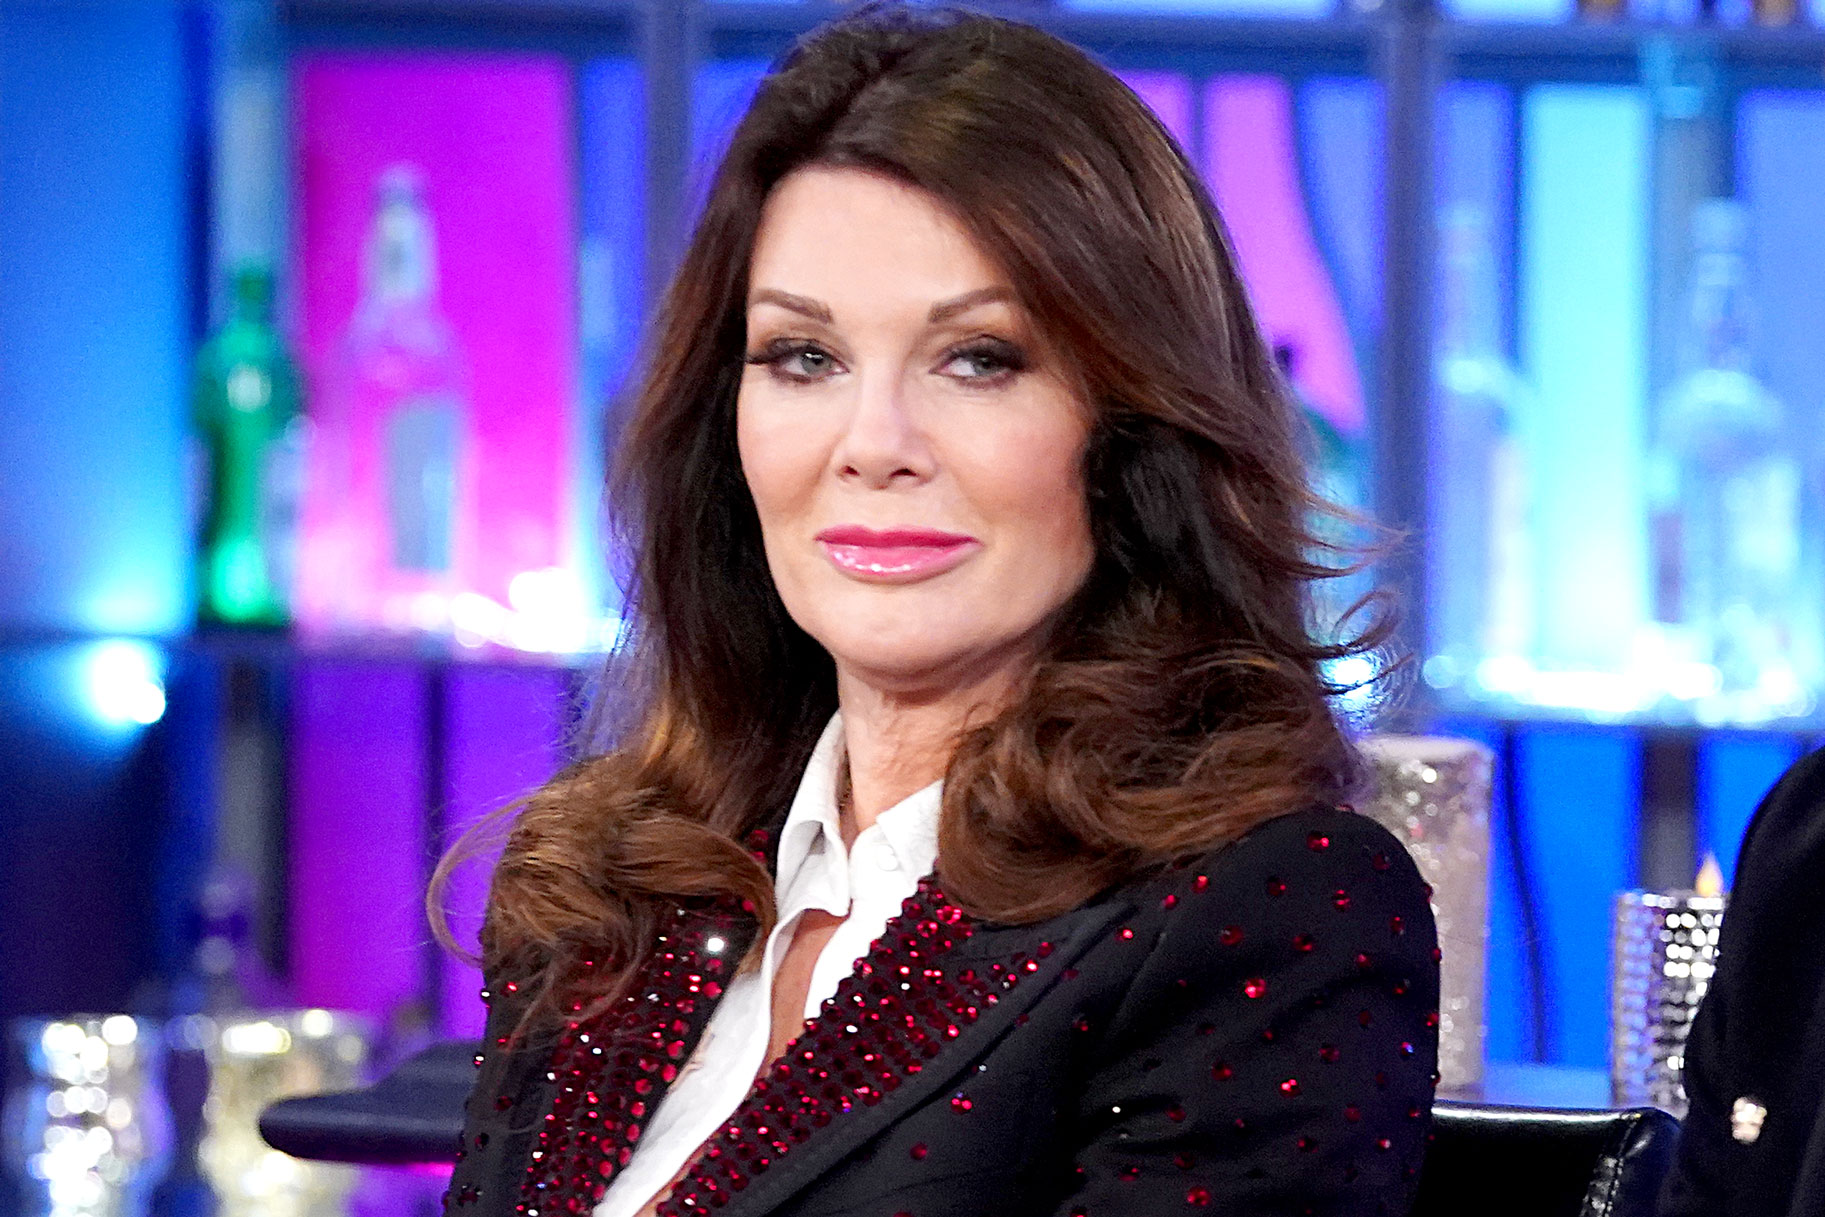 lisa-vanderpump-insists-she-doesnt-regret-lie-detector-test-despite-getting-slammed-by-her-co-stars-online